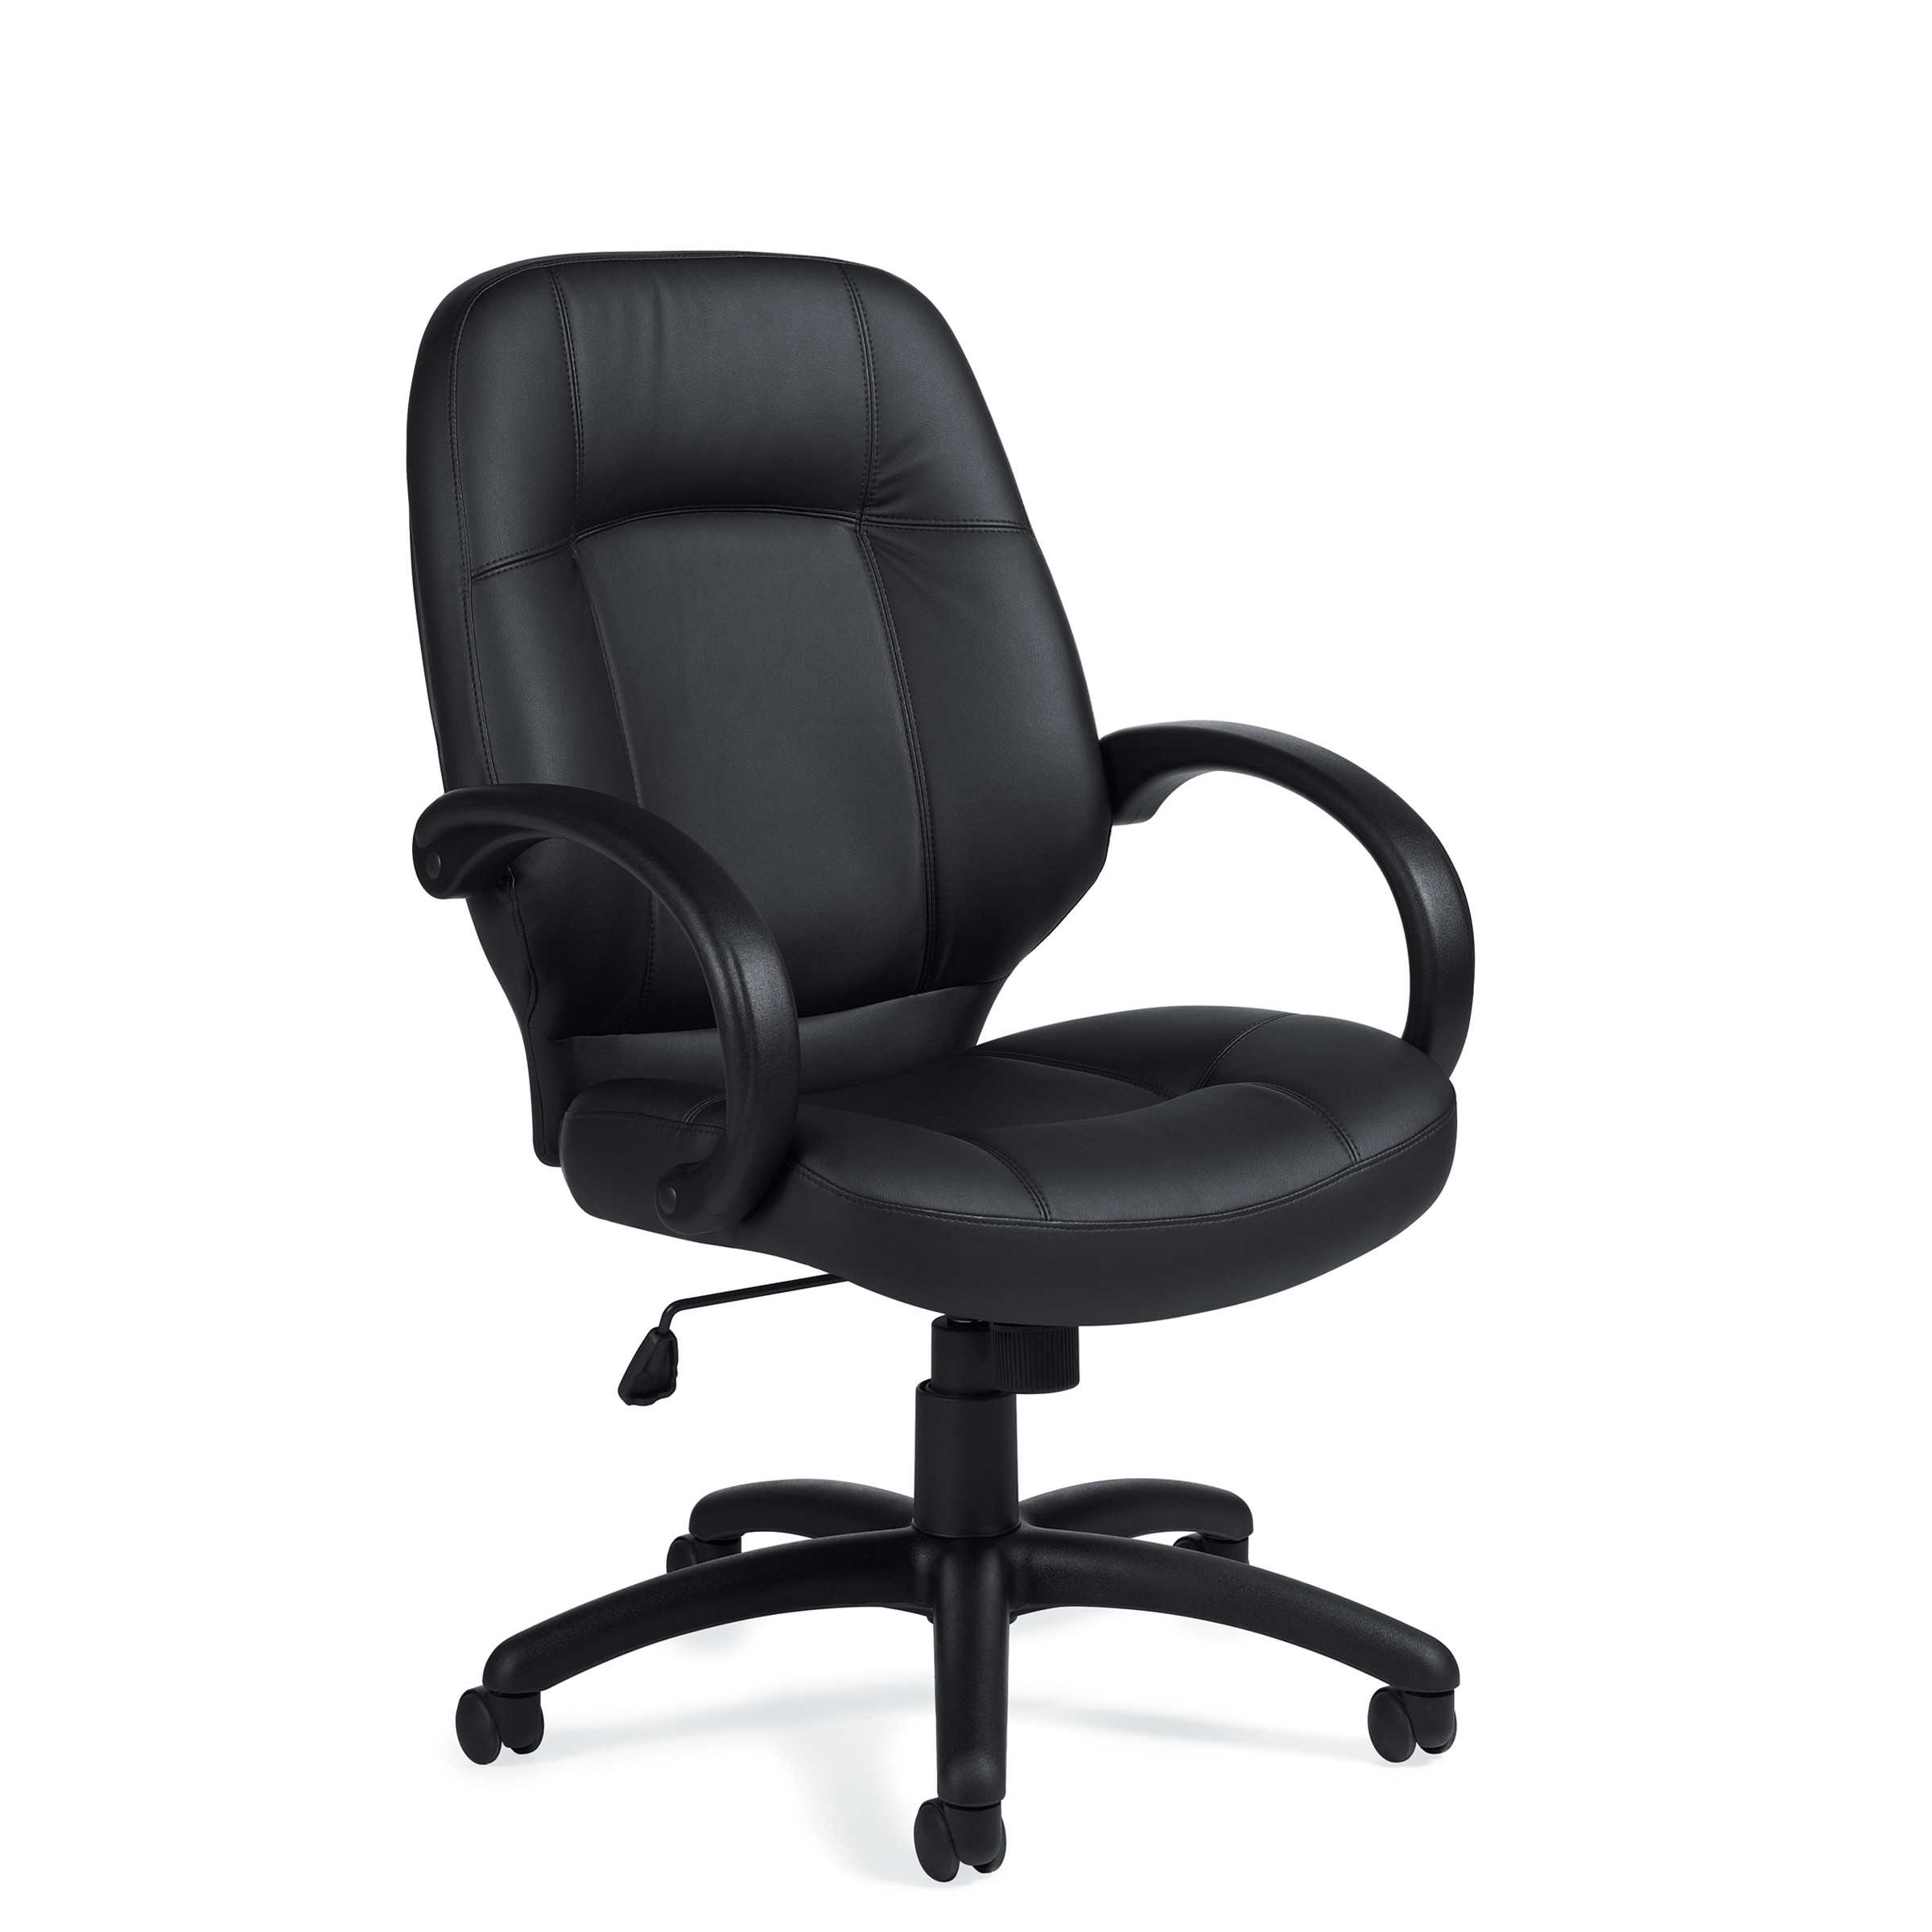 OTG Luxhide Executive Chair #OTG2788